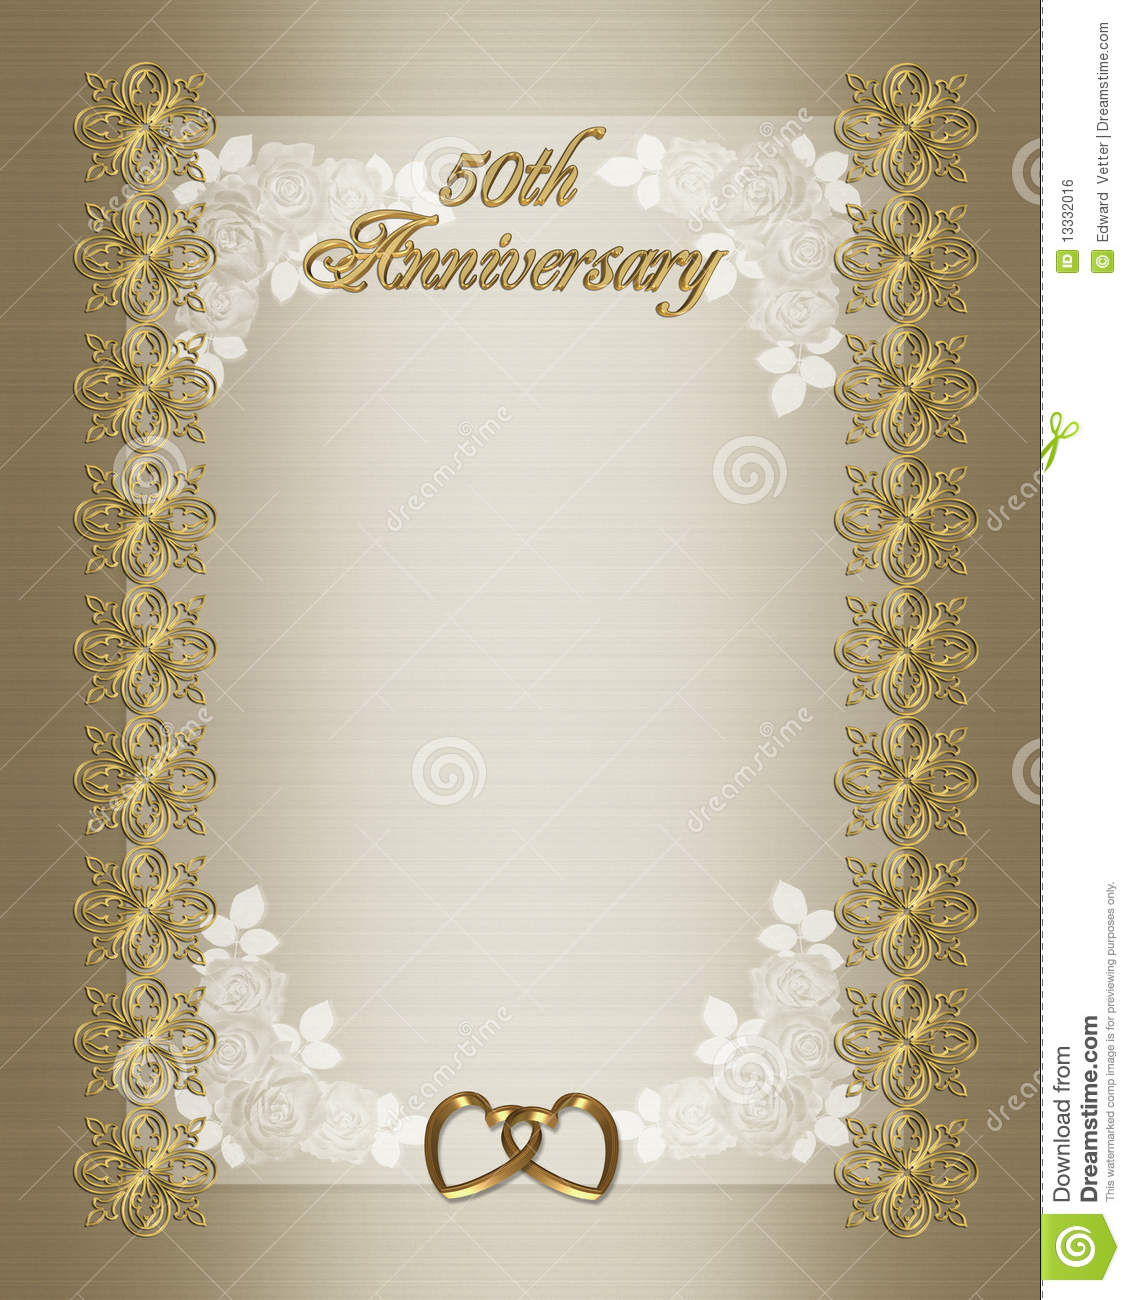 Free Th Anniversary Invitation Template Orderecigsjuiceinfo - Elegant birthday invitation free templates